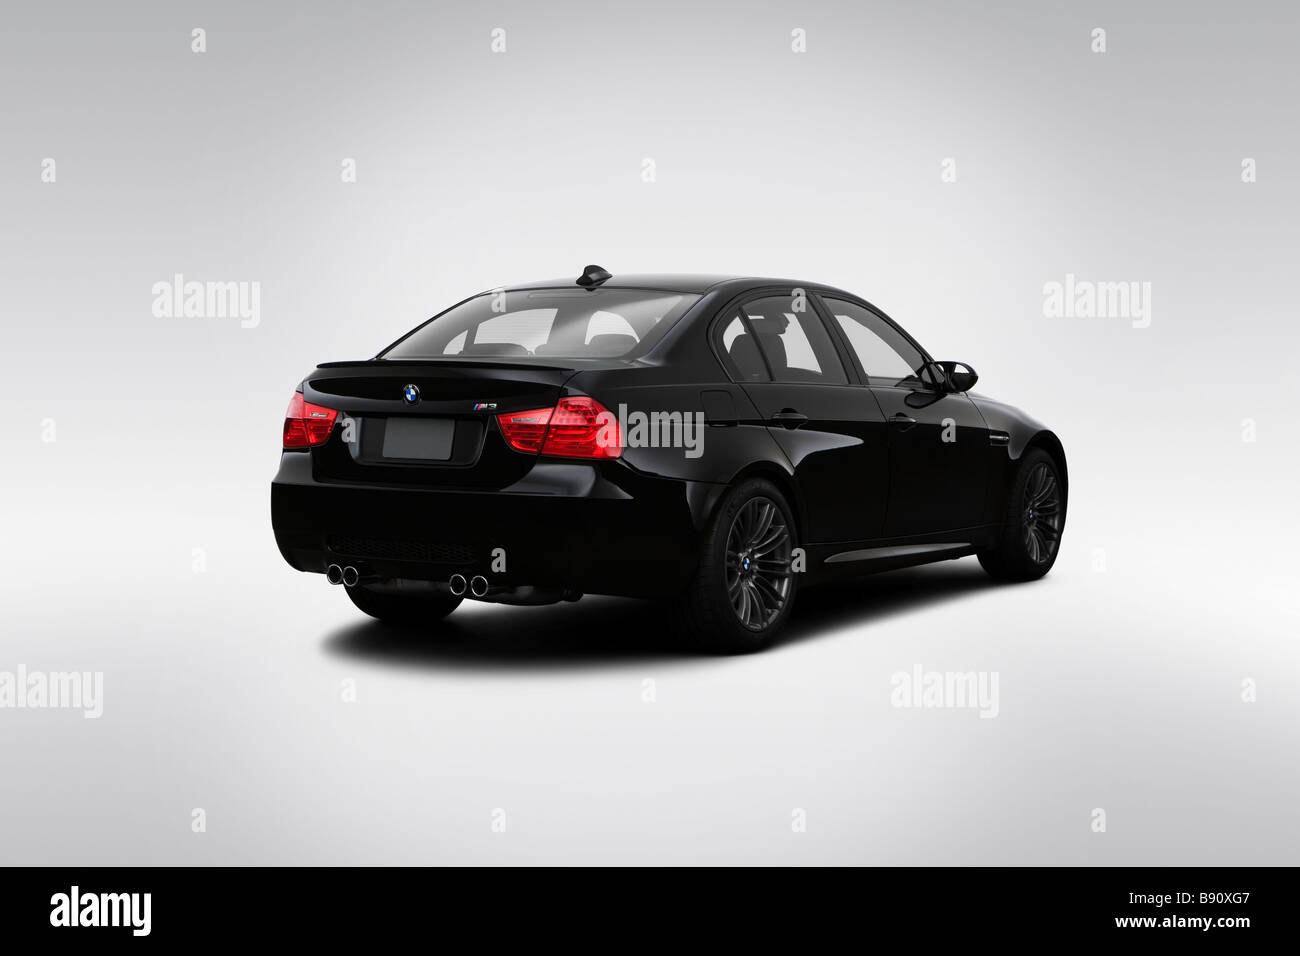 2009 BMW 3 Series M3 In Black   Rear Angle View   Stock Image